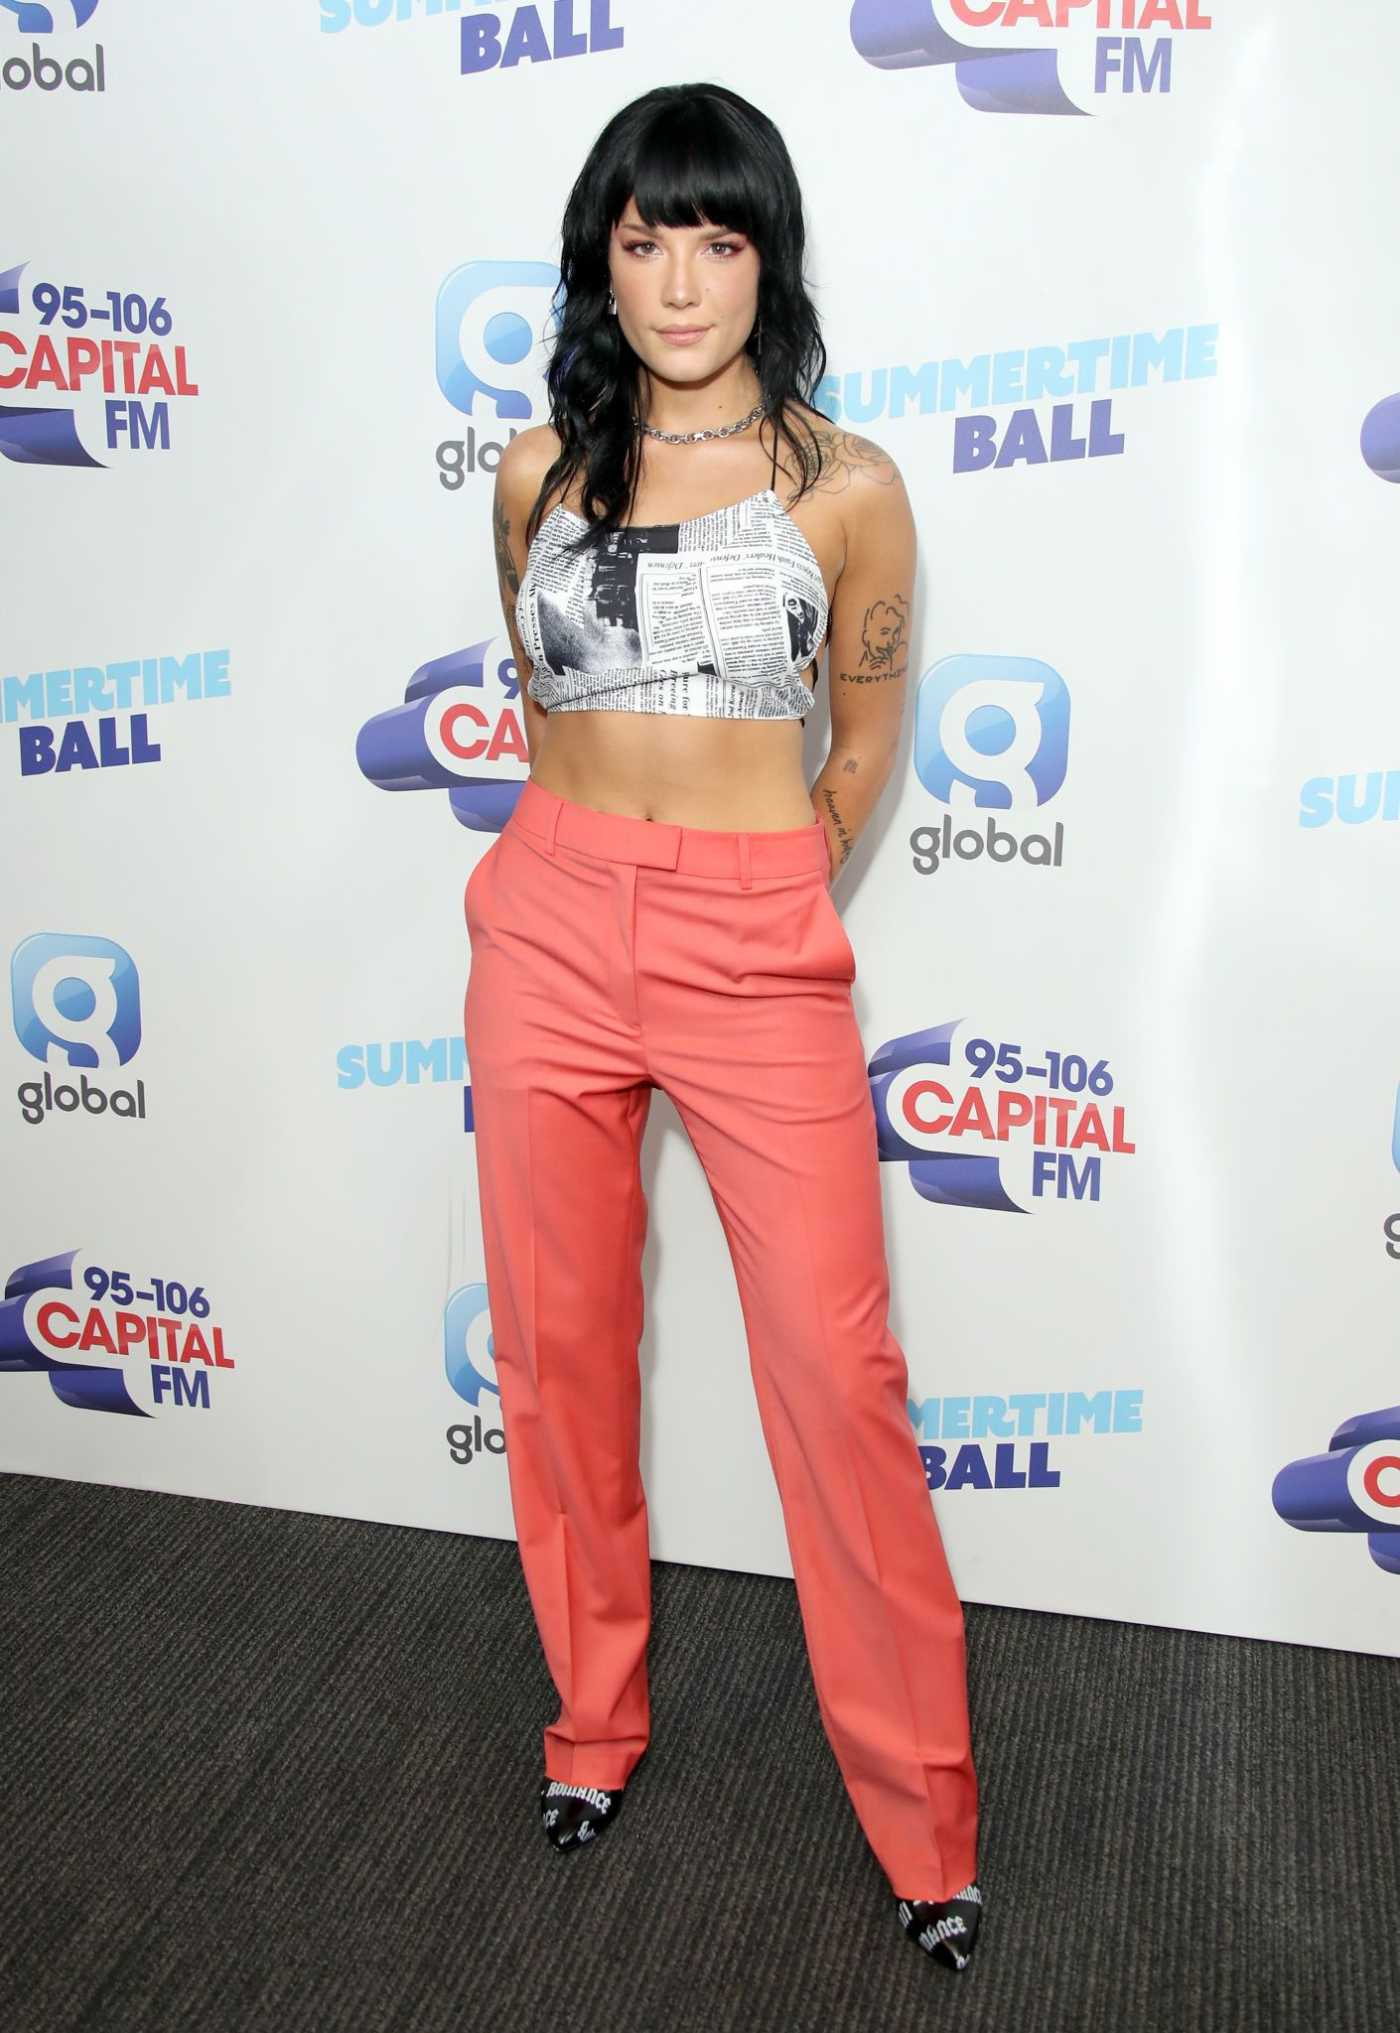 Halsey Attends 2019 Capital FM Summertime Ball in London 06/08/2019